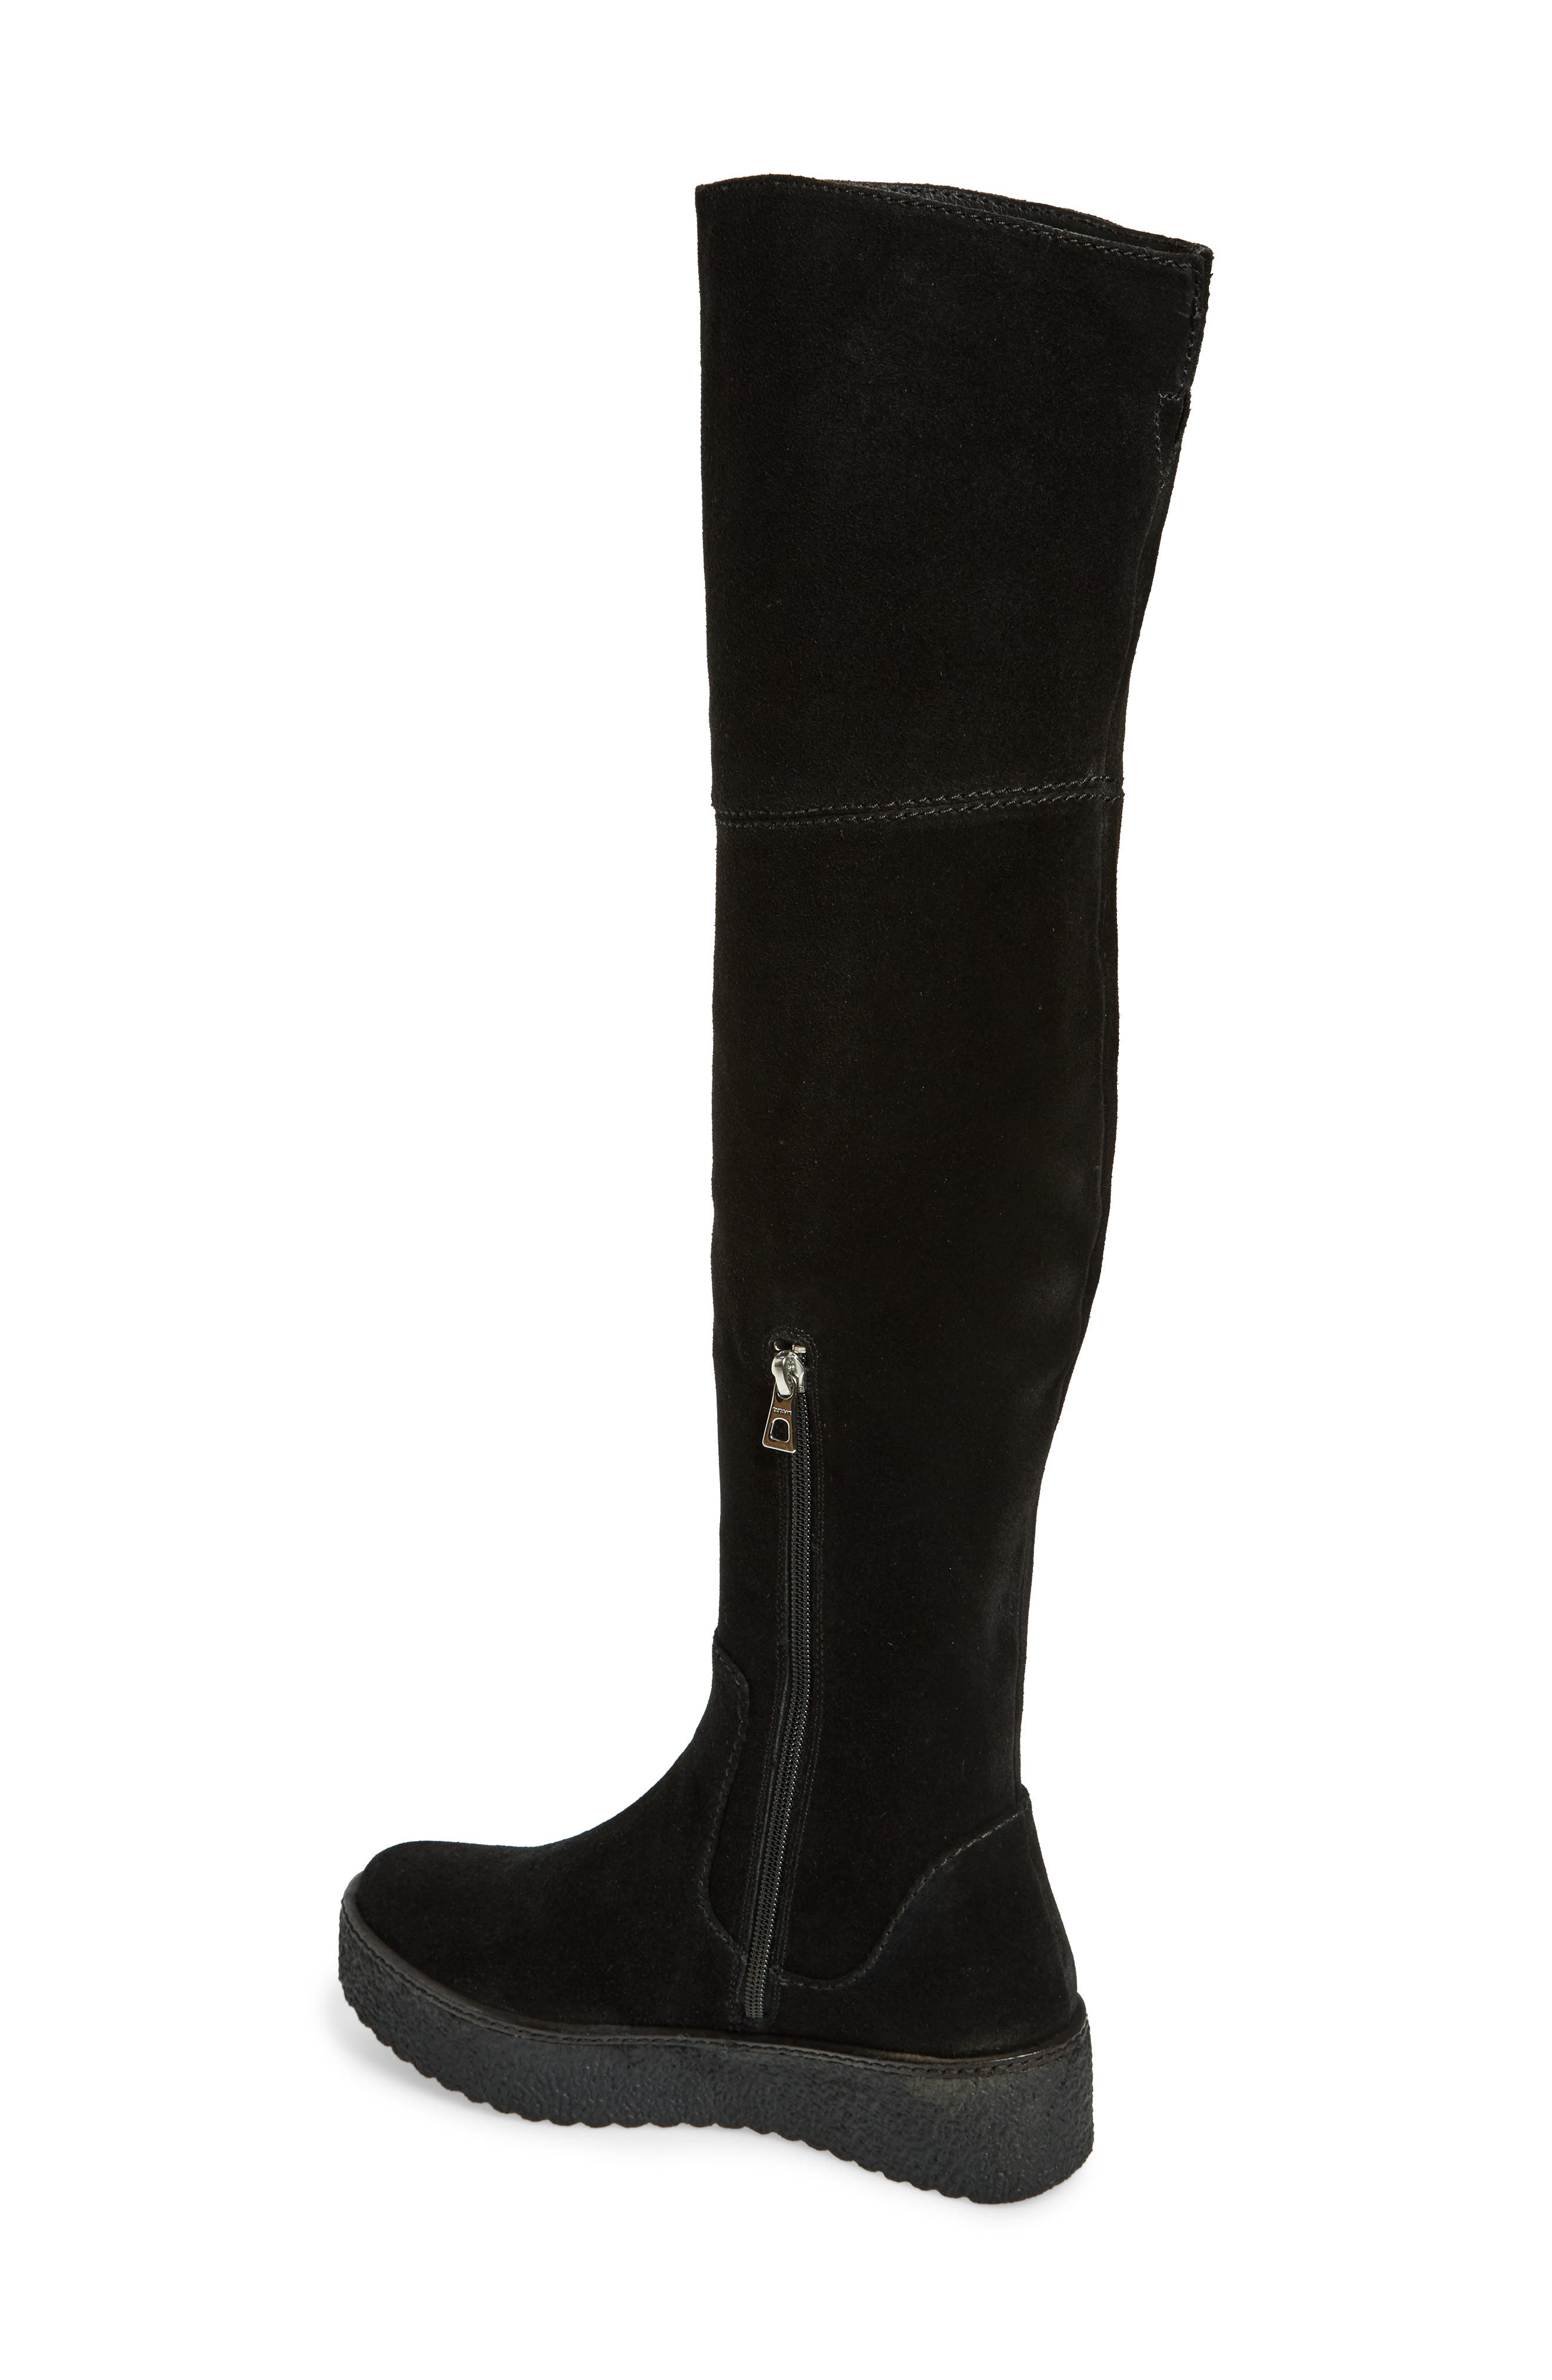 Tazza Over the Knee Boot,                             Alternate thumbnail 2, color,                             Black Suede